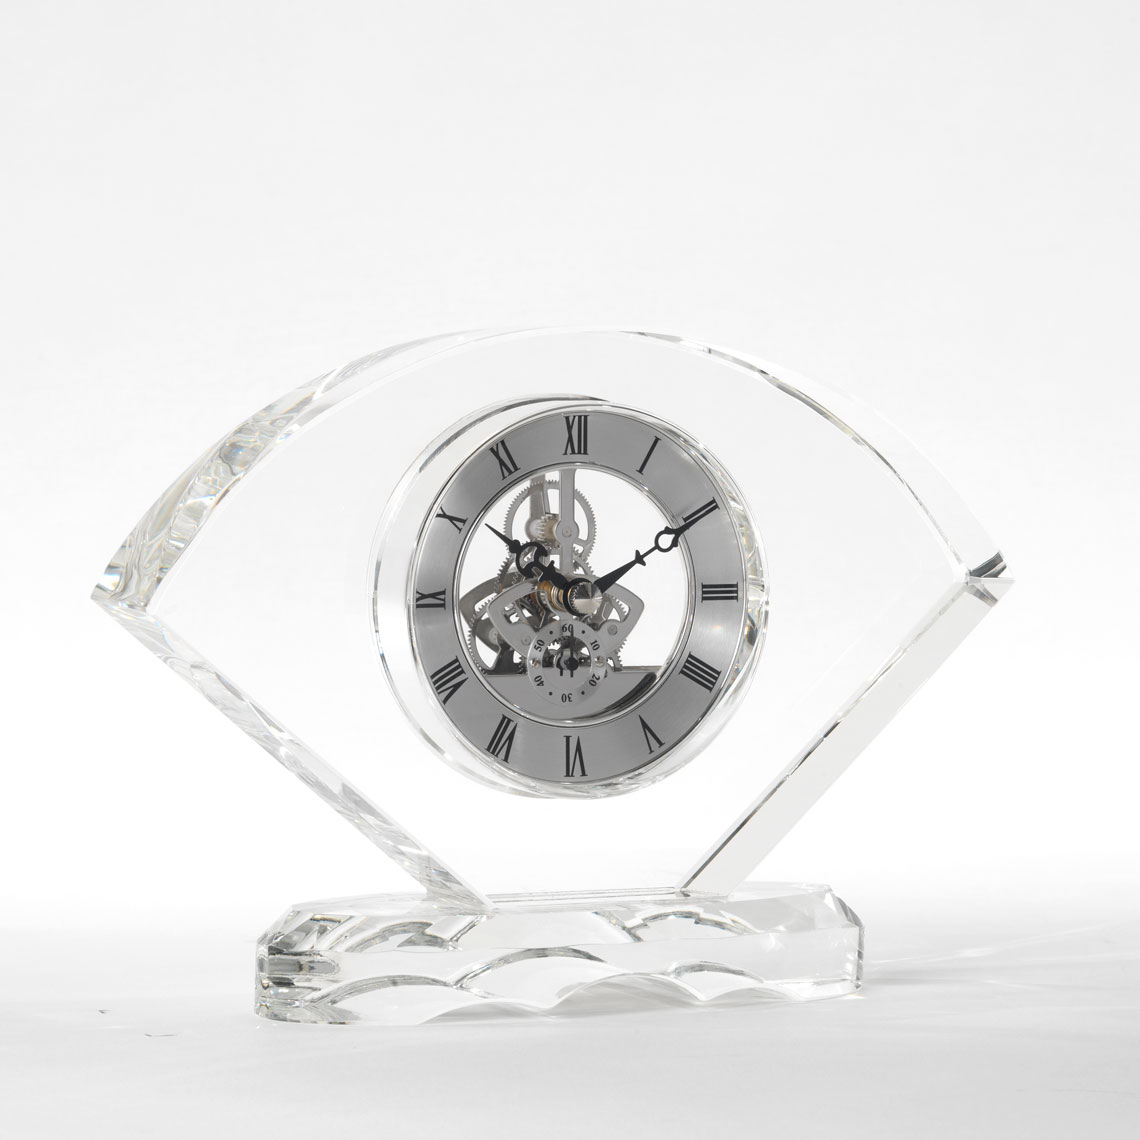 Crystal Desk Clock-Mantel Clock CS16-2, Crystal desk clock, quartz battery movement